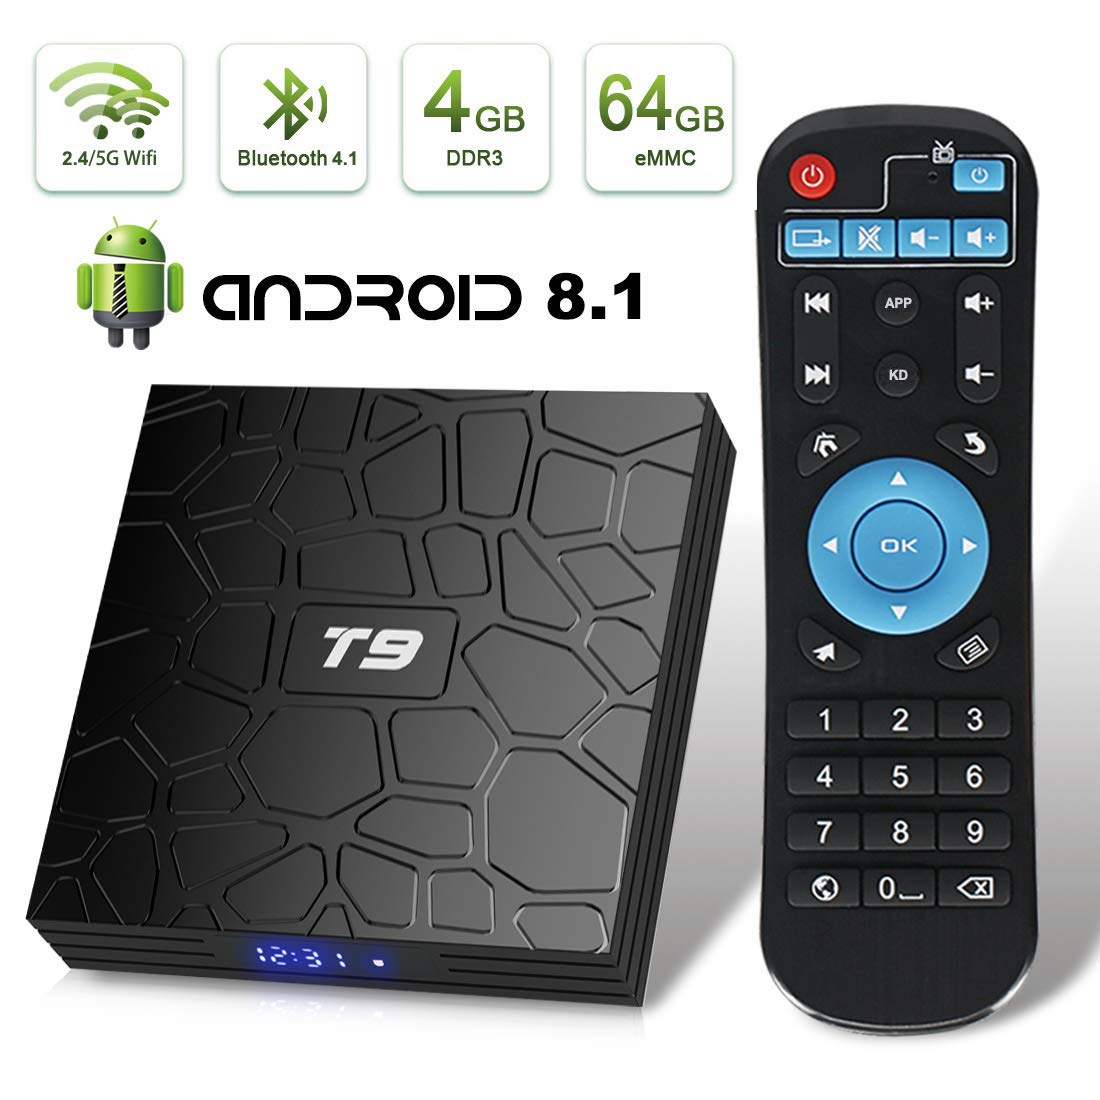 T9 Android 8.1 TV Box 4GB DDR3 RAM 64GB ROM RK3328 Bluetooth 4.1 Quad-Core Cortex-A53 64 Bits Support 2.4/5.0GHz WiFi 4K 3D Ultra HD HDMI H.265 by EVER EXPRESS